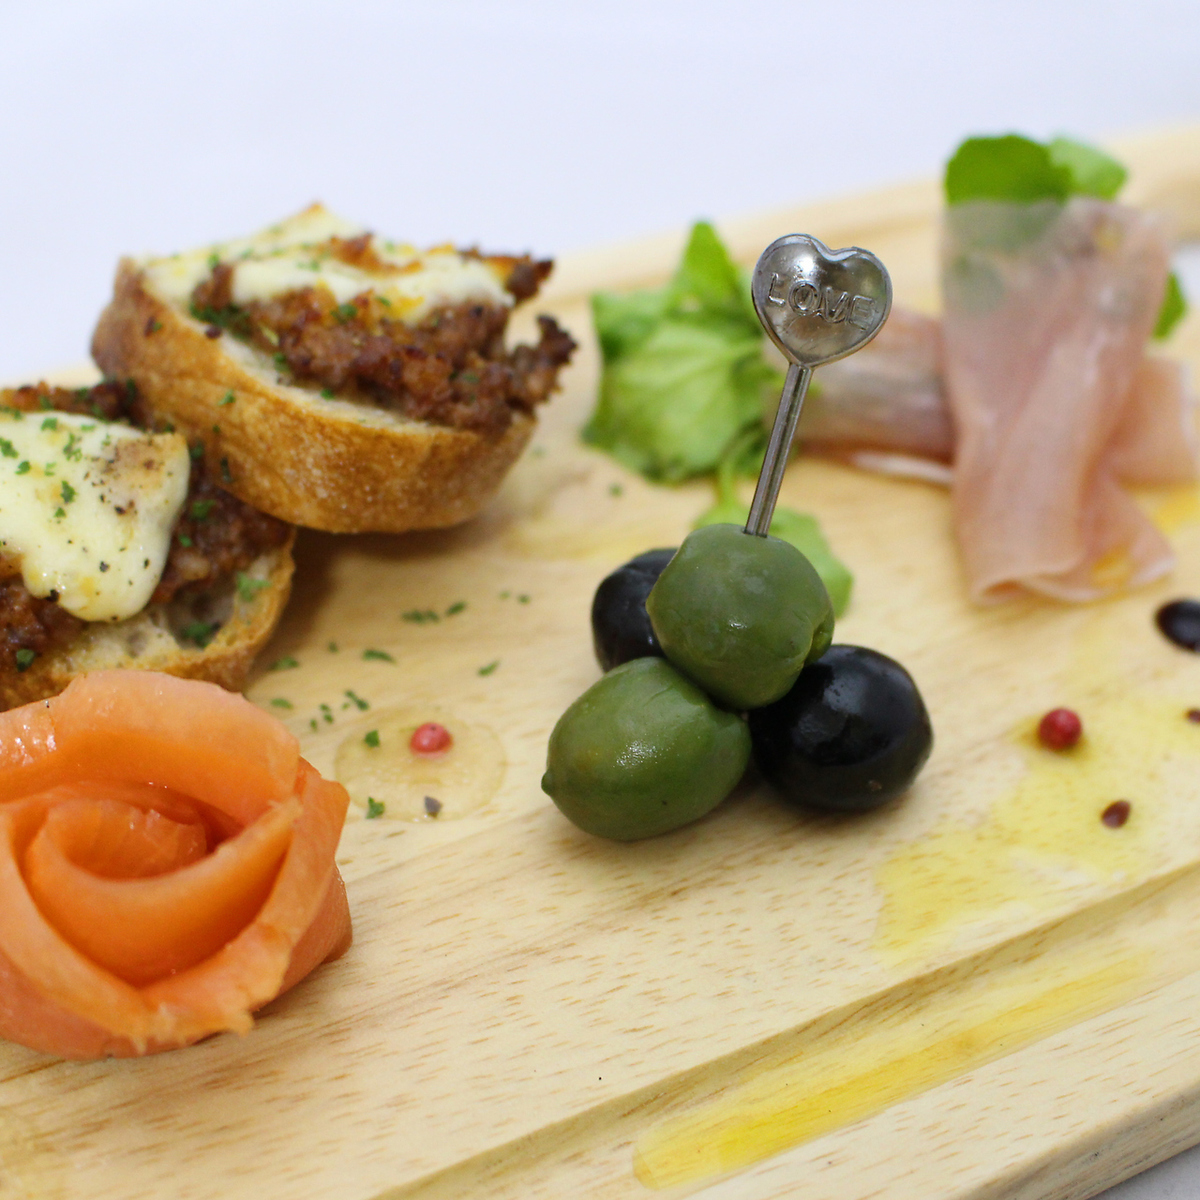 Five kinds of tapas